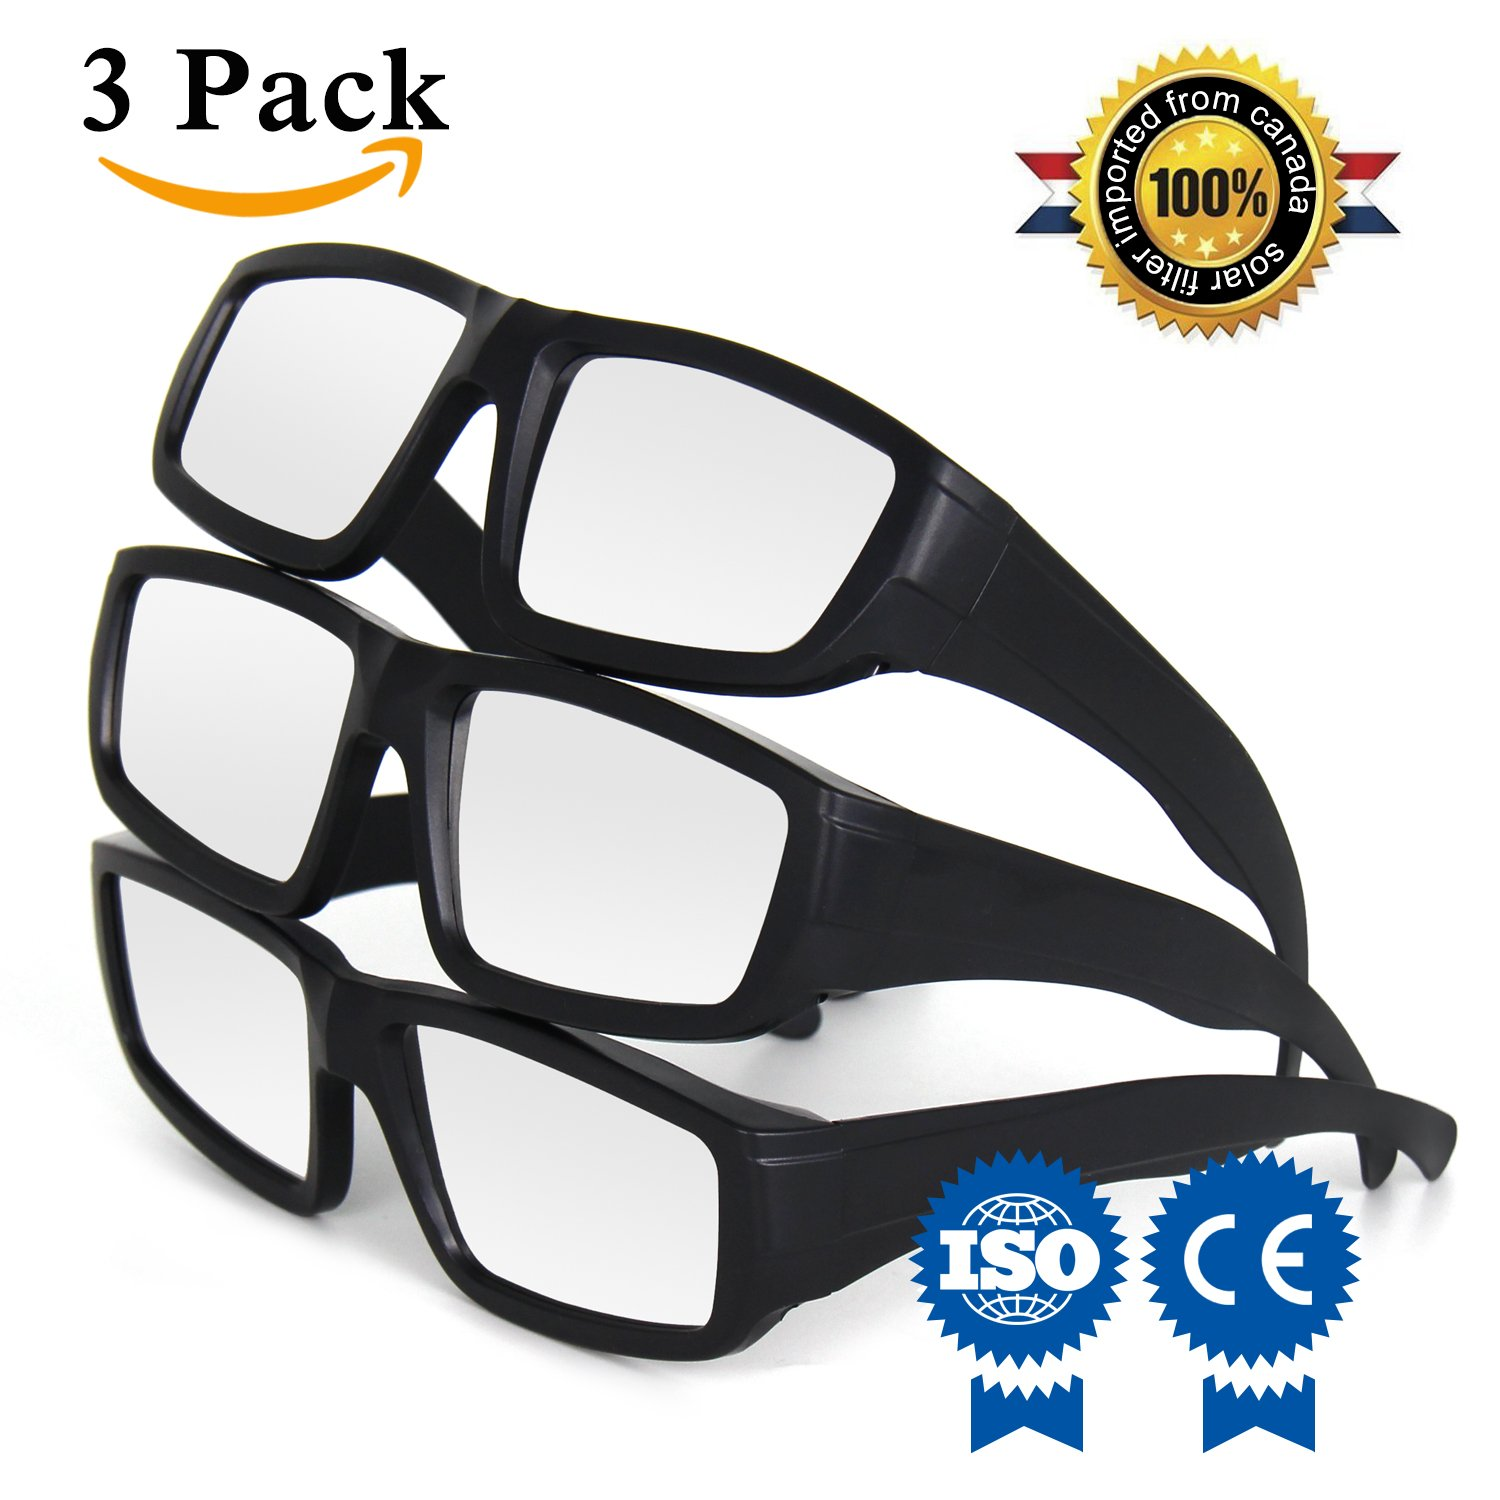 Yeahbeer Solar Eclipse Glasses -CE and ISO Certified - Eye Protection- Safe Solar Viewing-Safe Shades for Direct Sun Viewing& Prepared for the total solar eclipse on August 21, 2017 (3 pack of black)